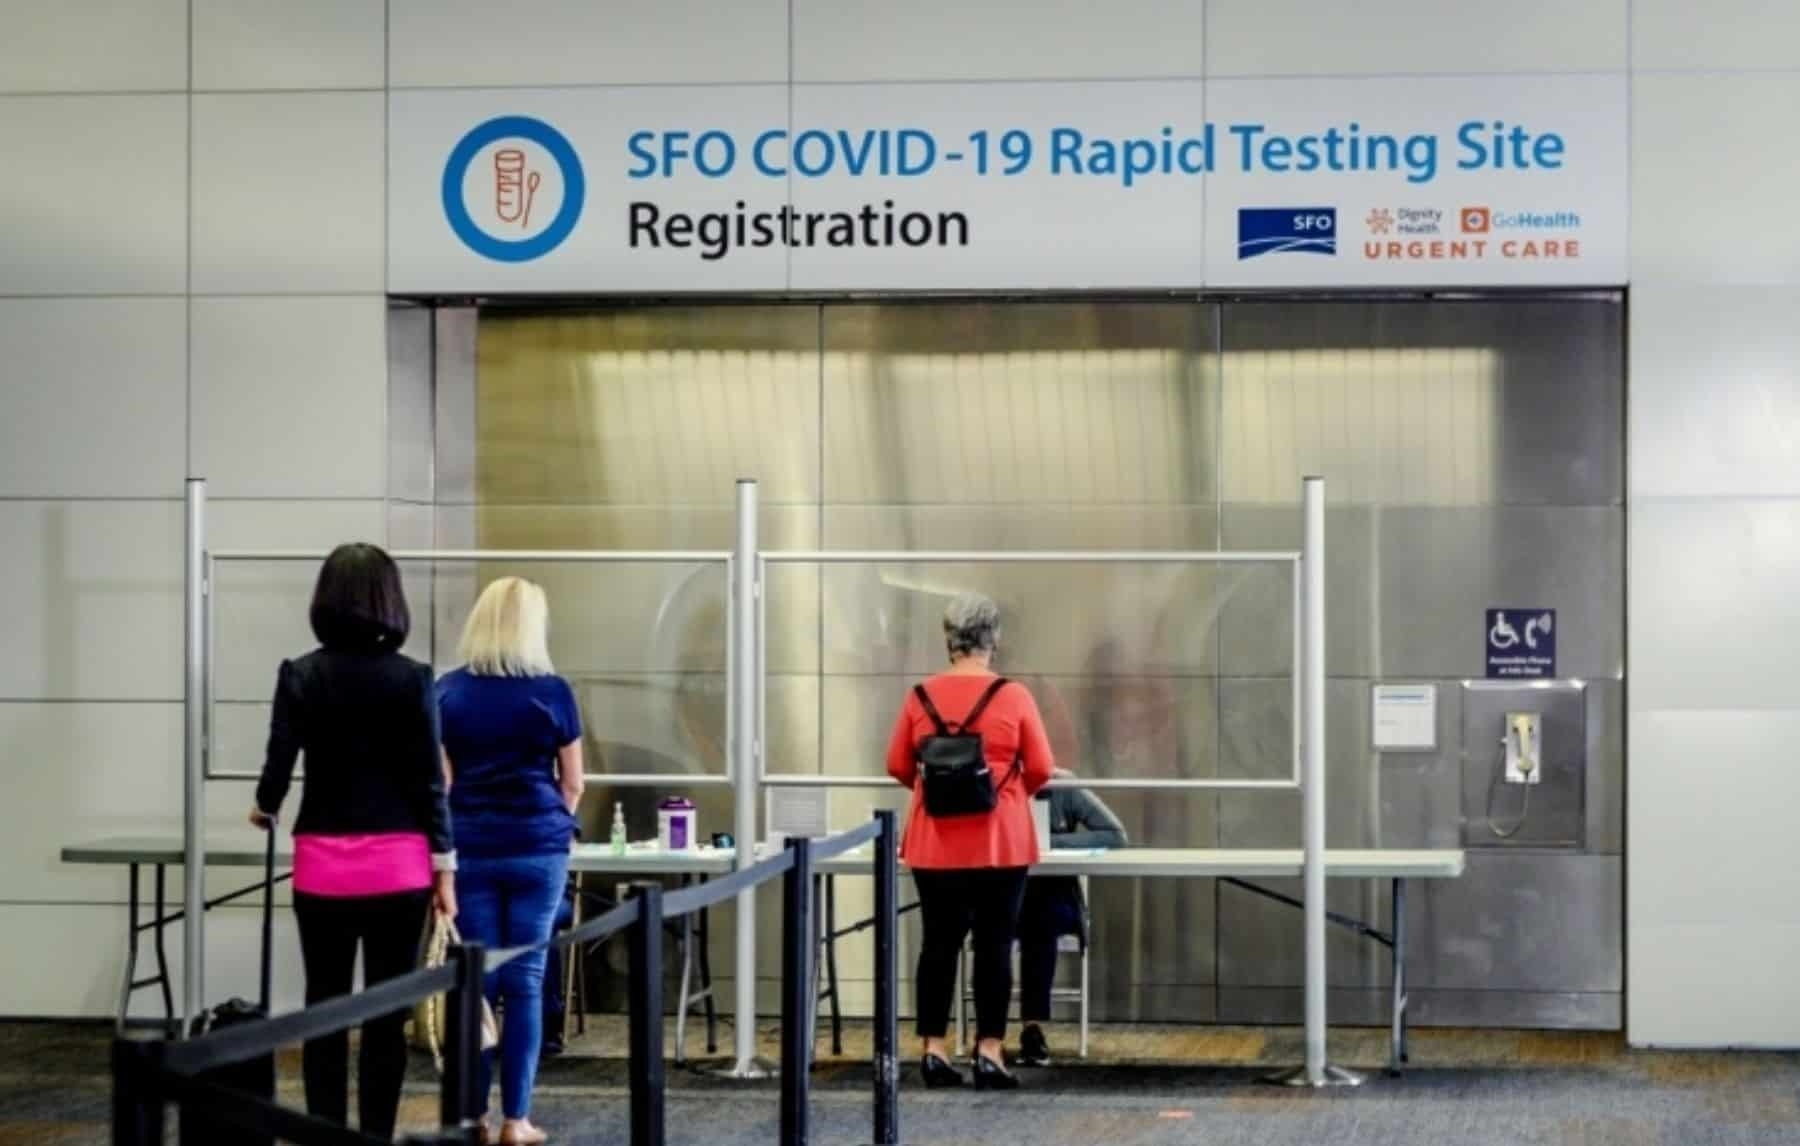 People headed to the airport will now have the option of getting their test done ahead of time, or waiting until the last minute—either by completing a self-collected mail-in test before their trip or taking a rapid